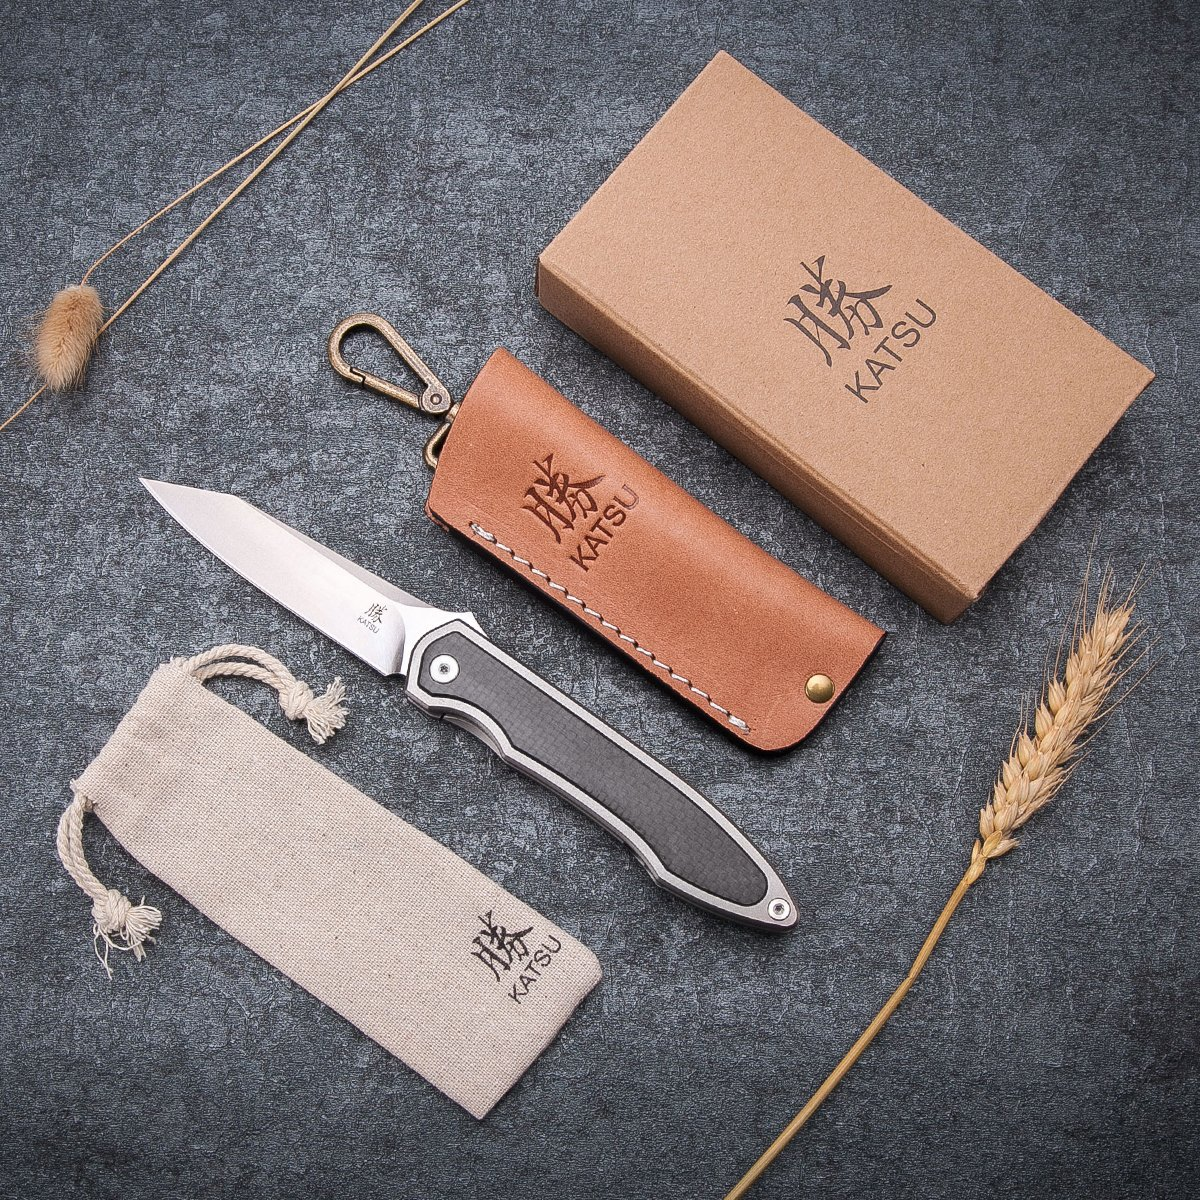 KATSU Camping Pocket Folding Japanese Knife, Titanium & Carbon Fiber Handle, Frame Lock, Stonewashed Blade and Titanium Clip, Leather Sheath by KATSU (Image #5)